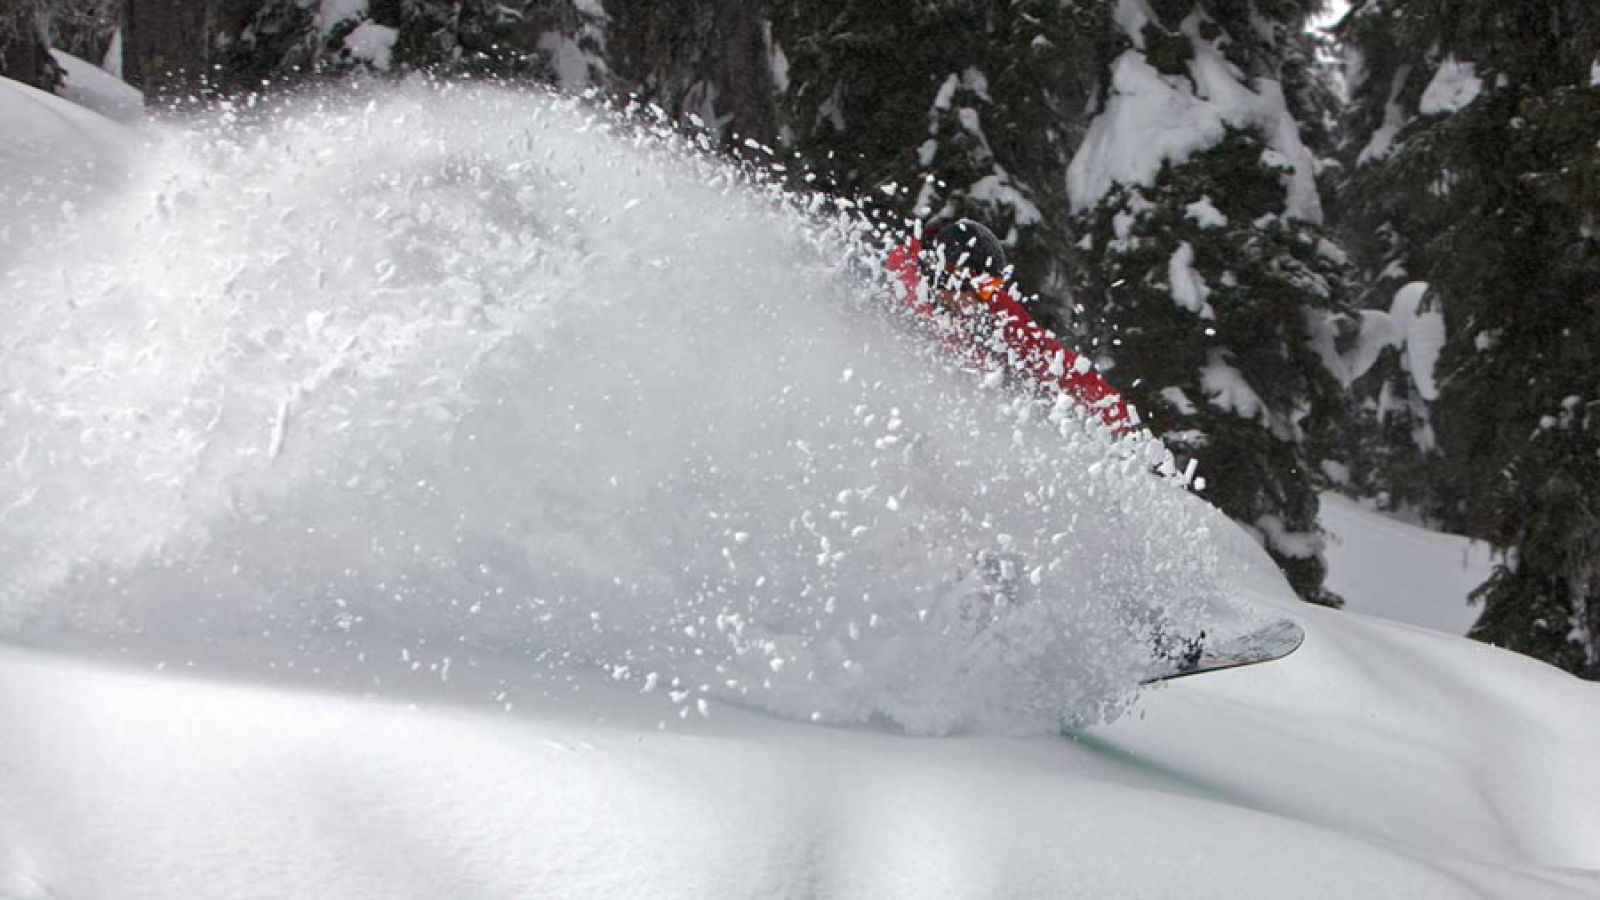 Wonderful powder skiing.